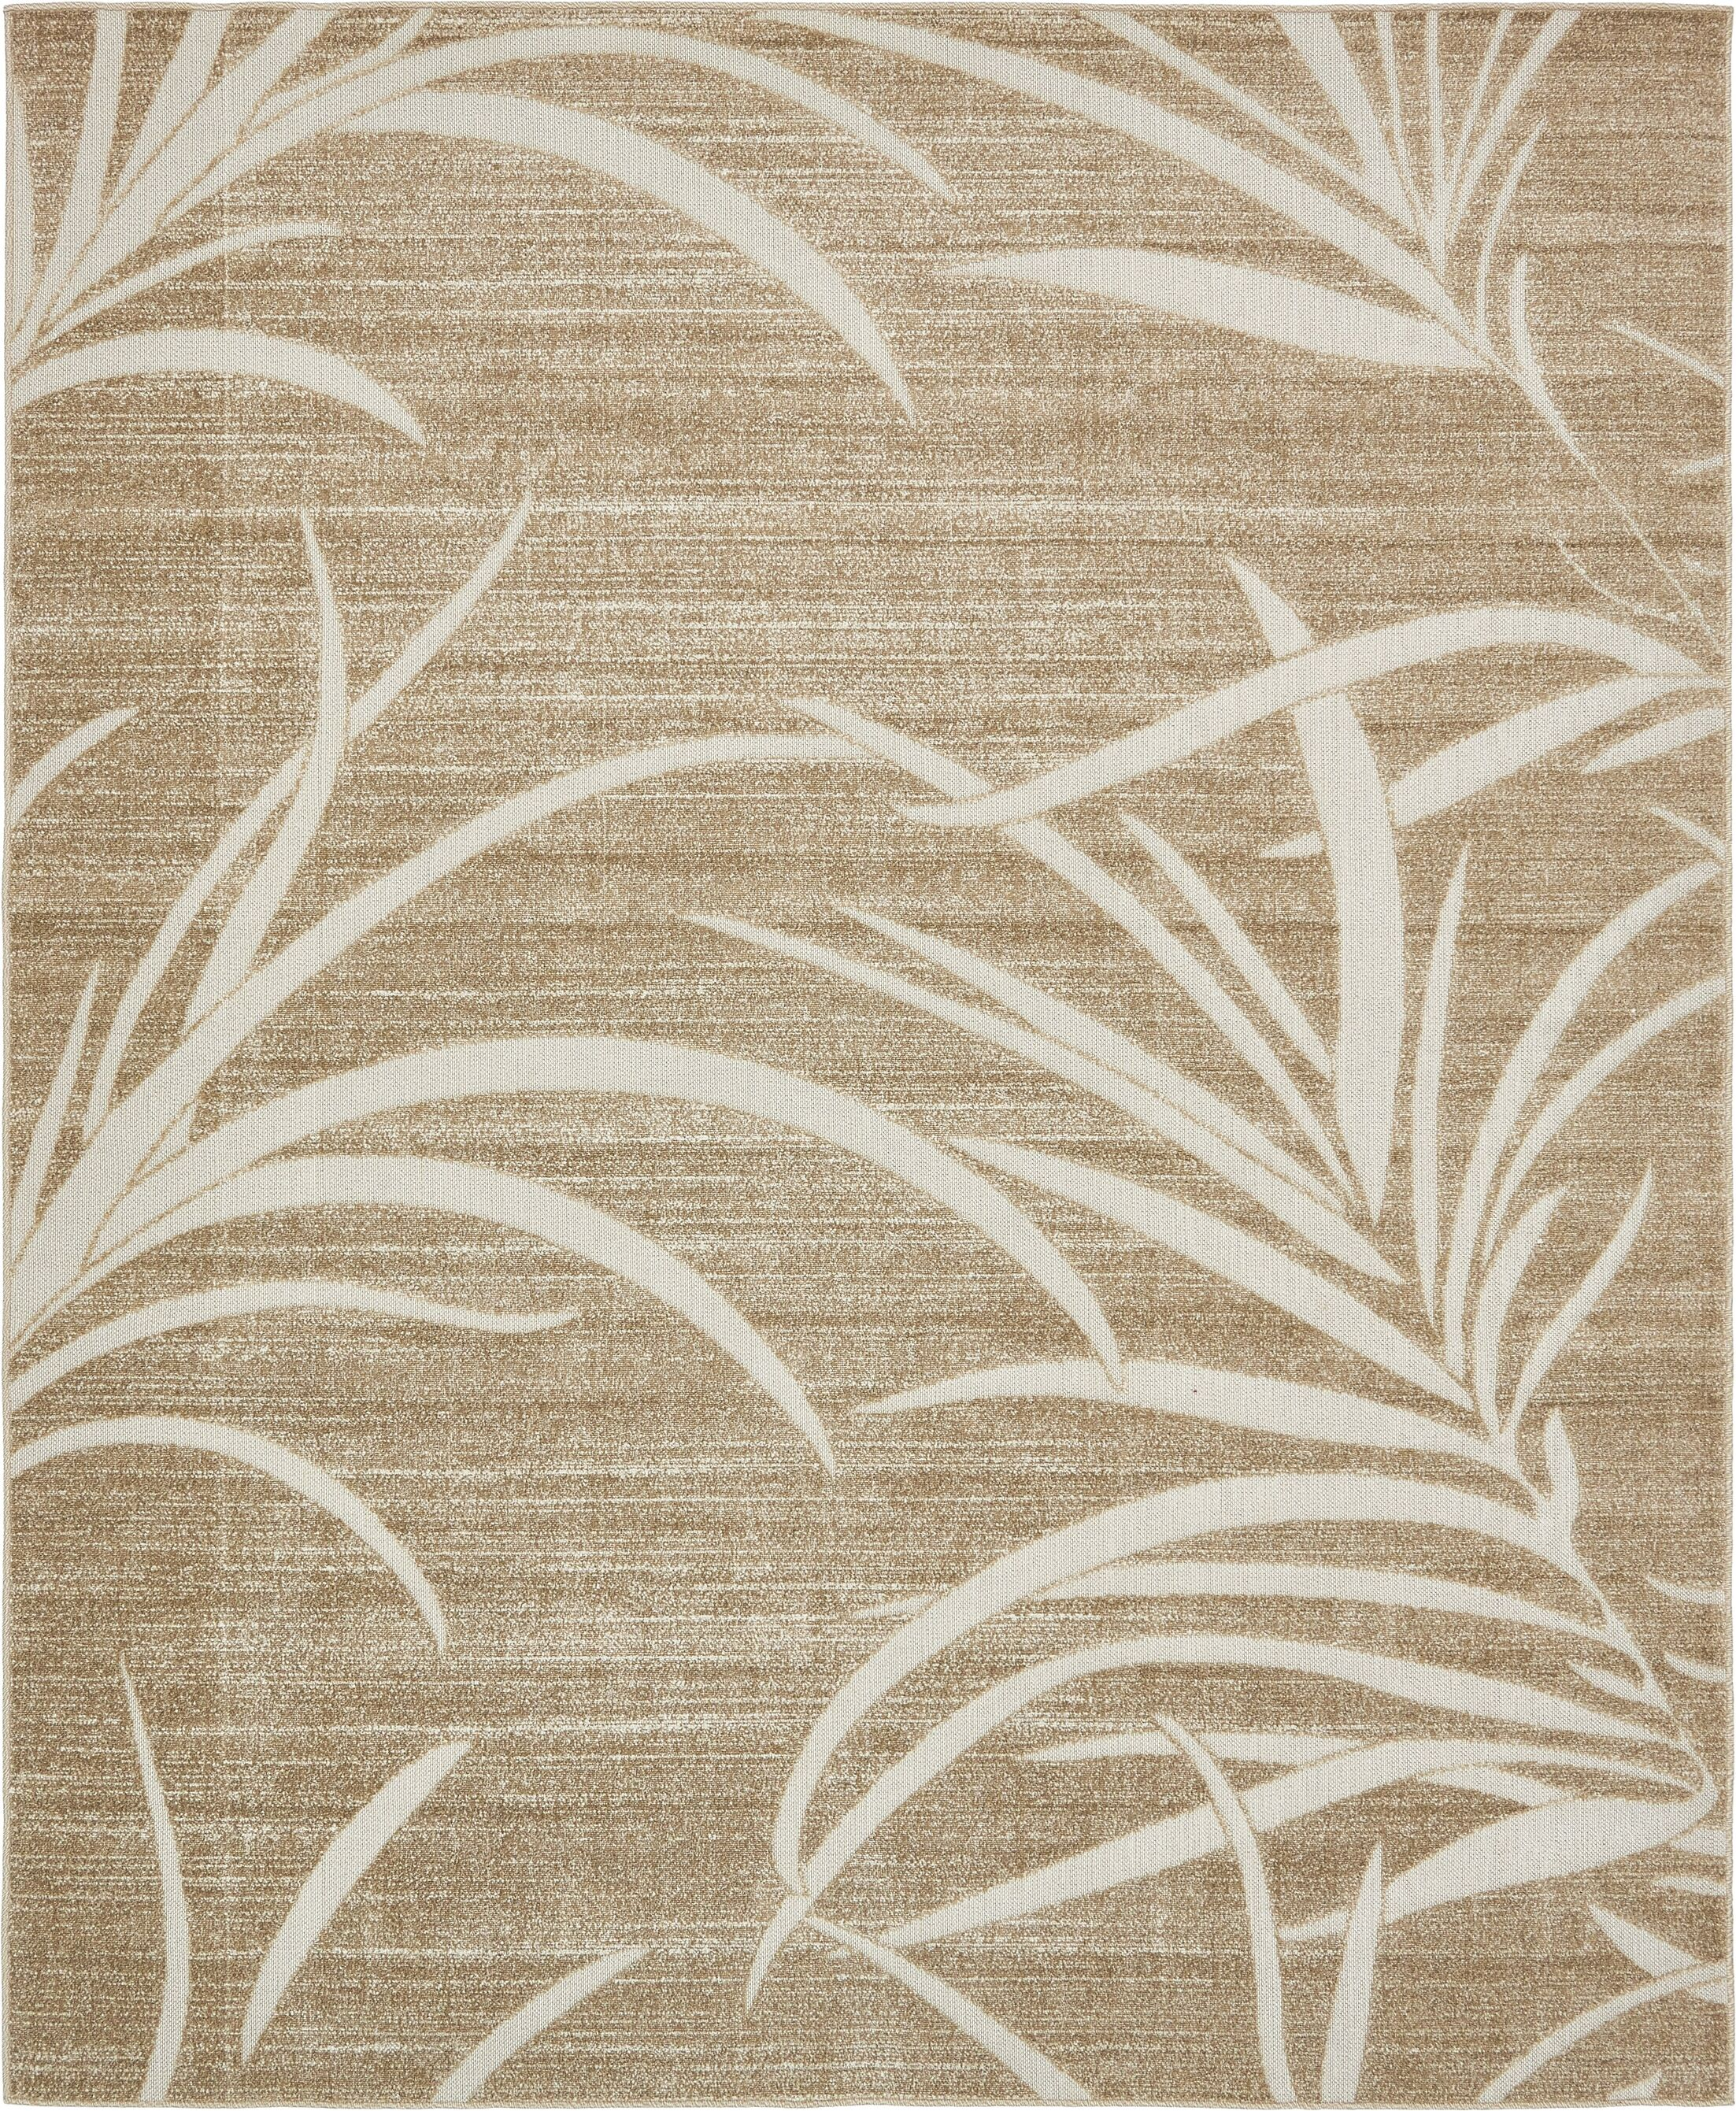 Spathariko Beige Indoor/Outdoor Area Rug Rug Size: Rectangle 8' x 10'